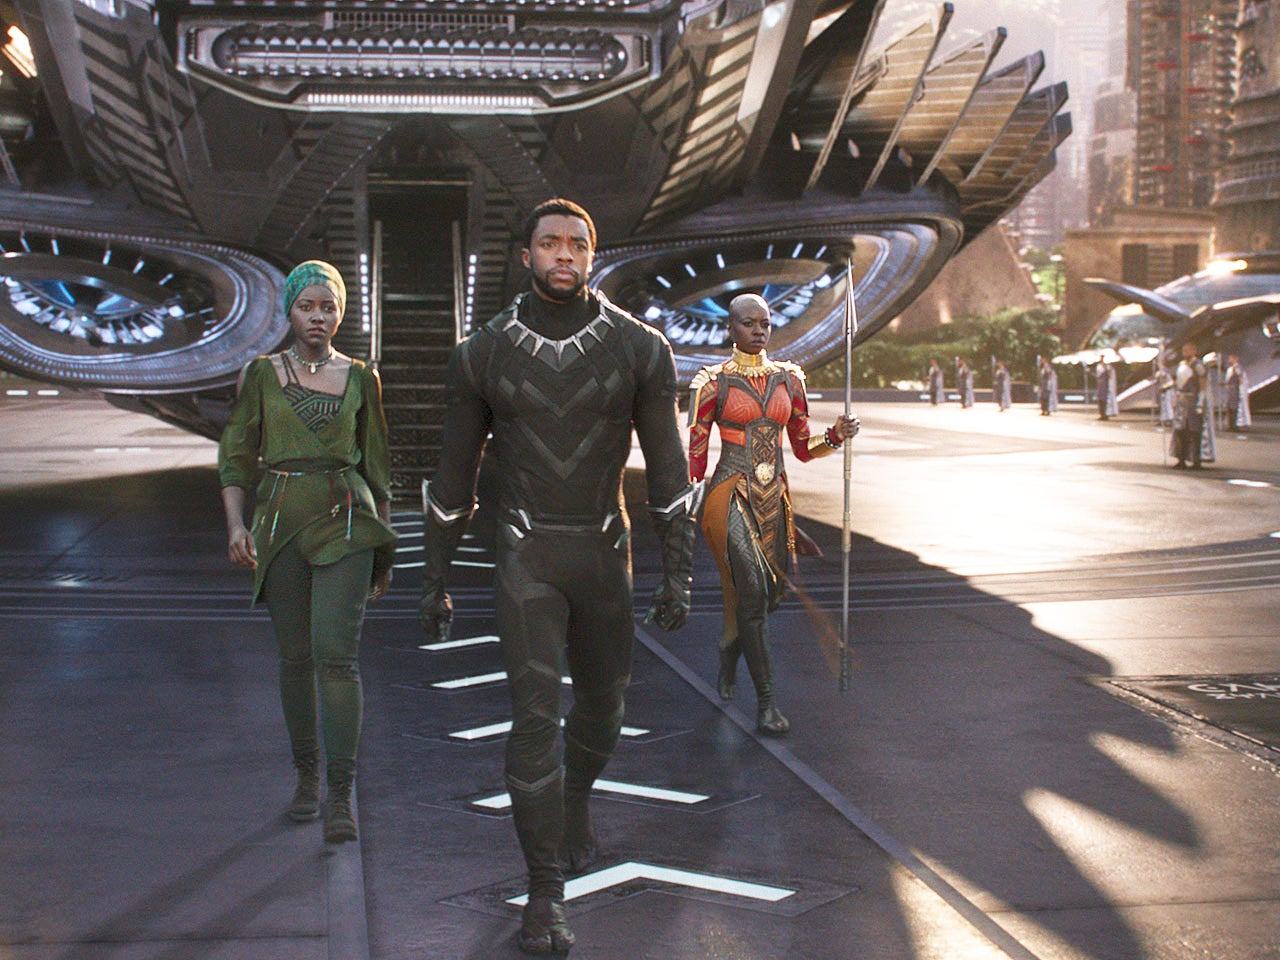 'Black Panther' Passes 'Titanic' To Become 3rd Highest Grossing Film In U.S. Box Office